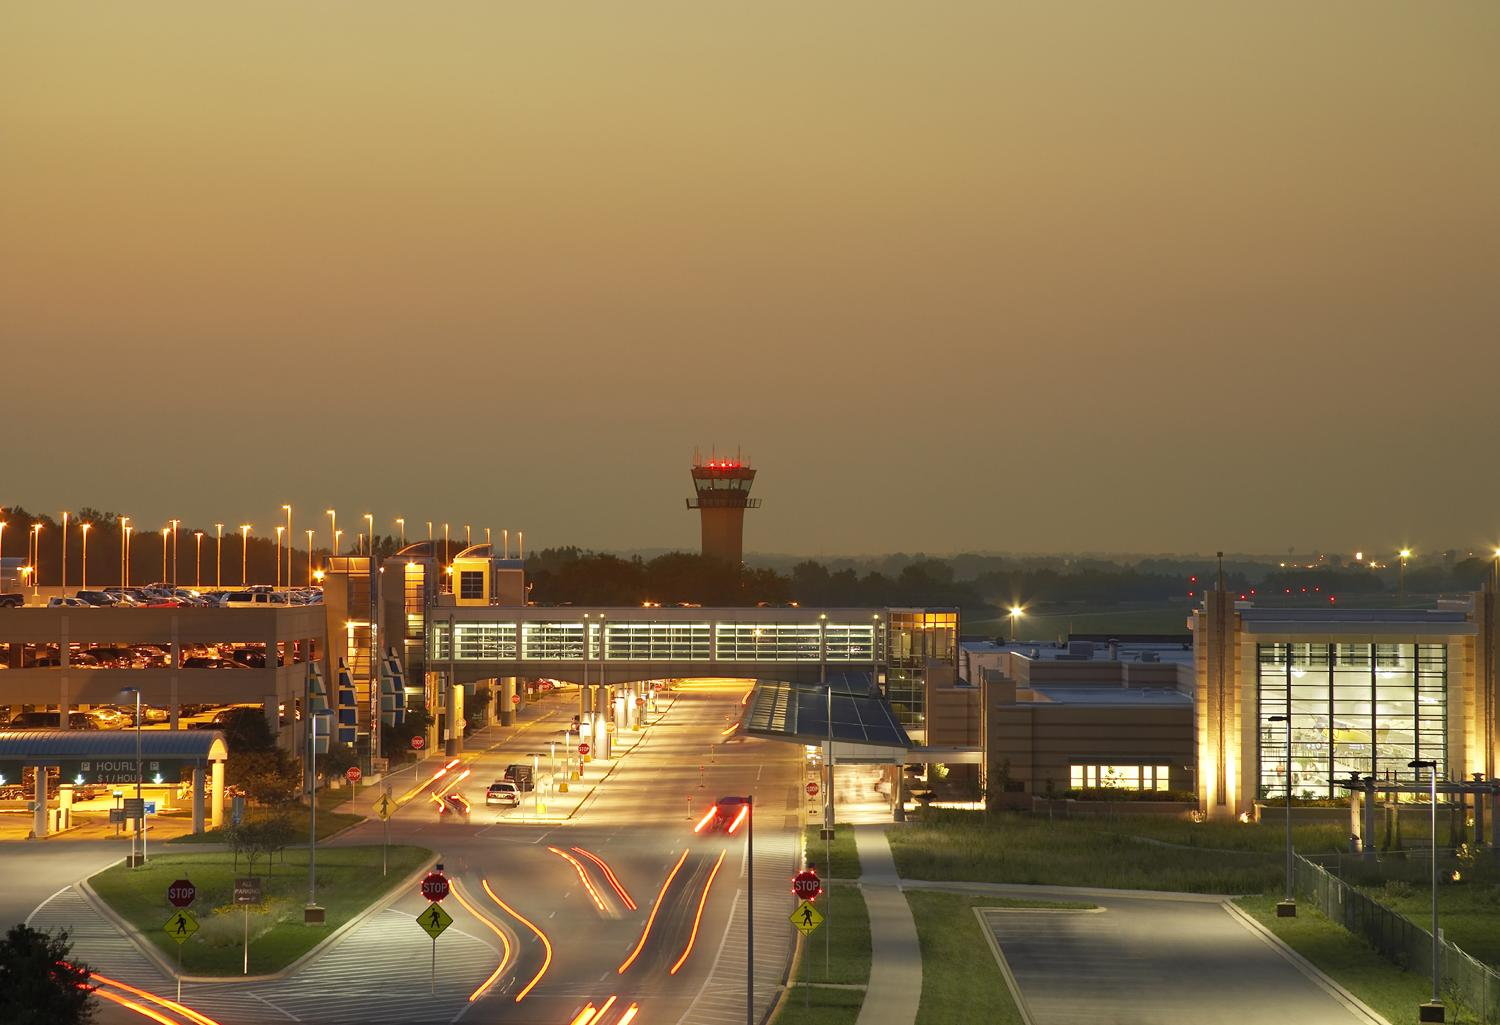 State's Airports Still Seeing Large Drops In Travel, But Numbers Improving For Some